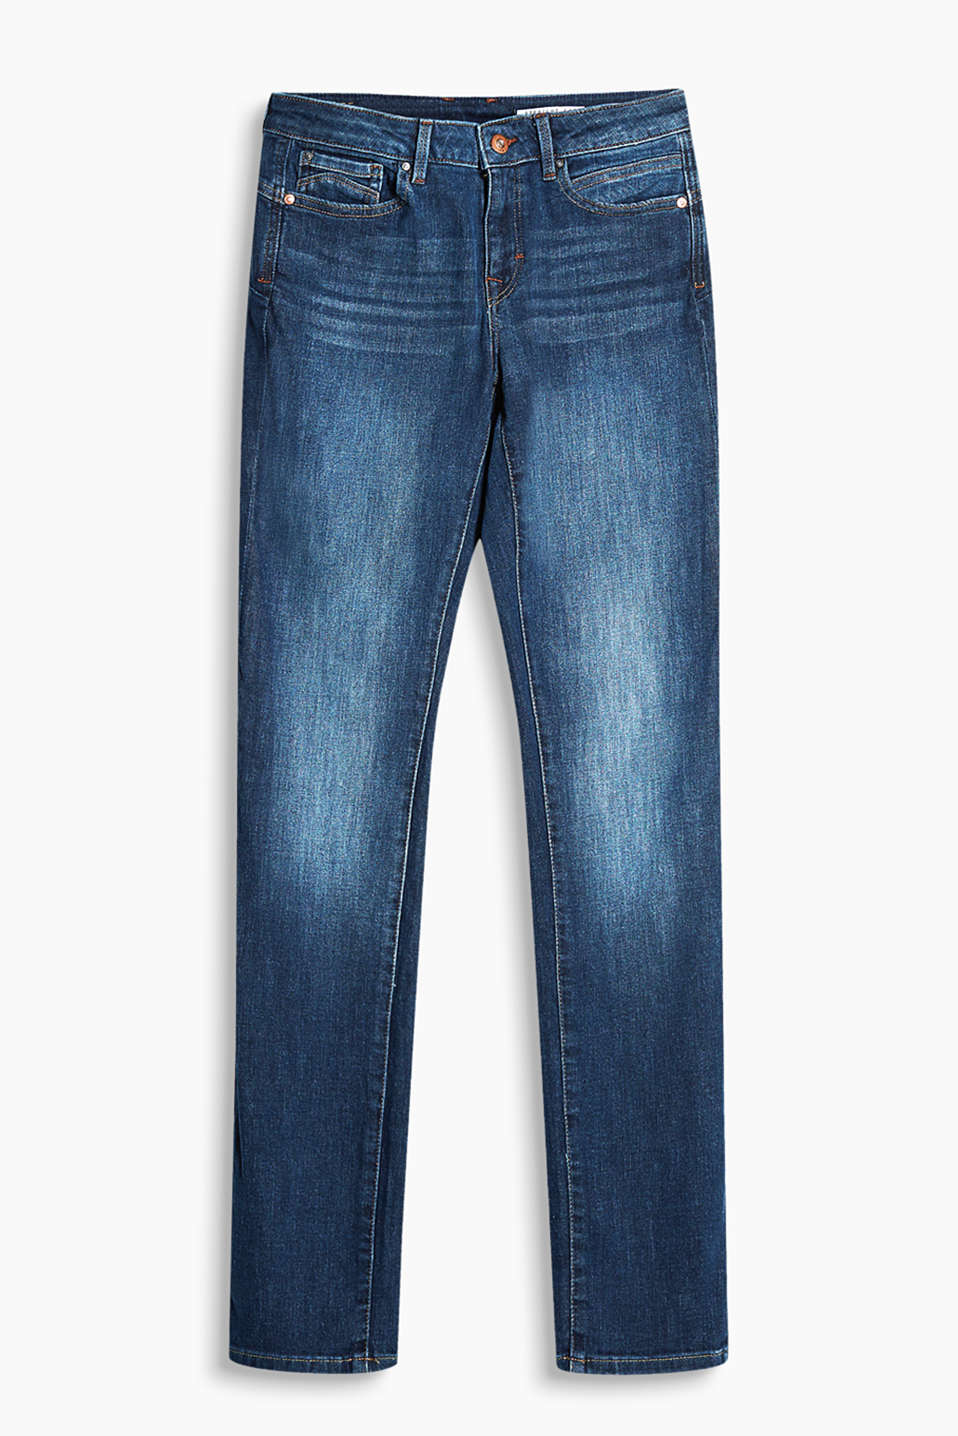 Slinky stretch jeans with flap pockets and authentic washed effects